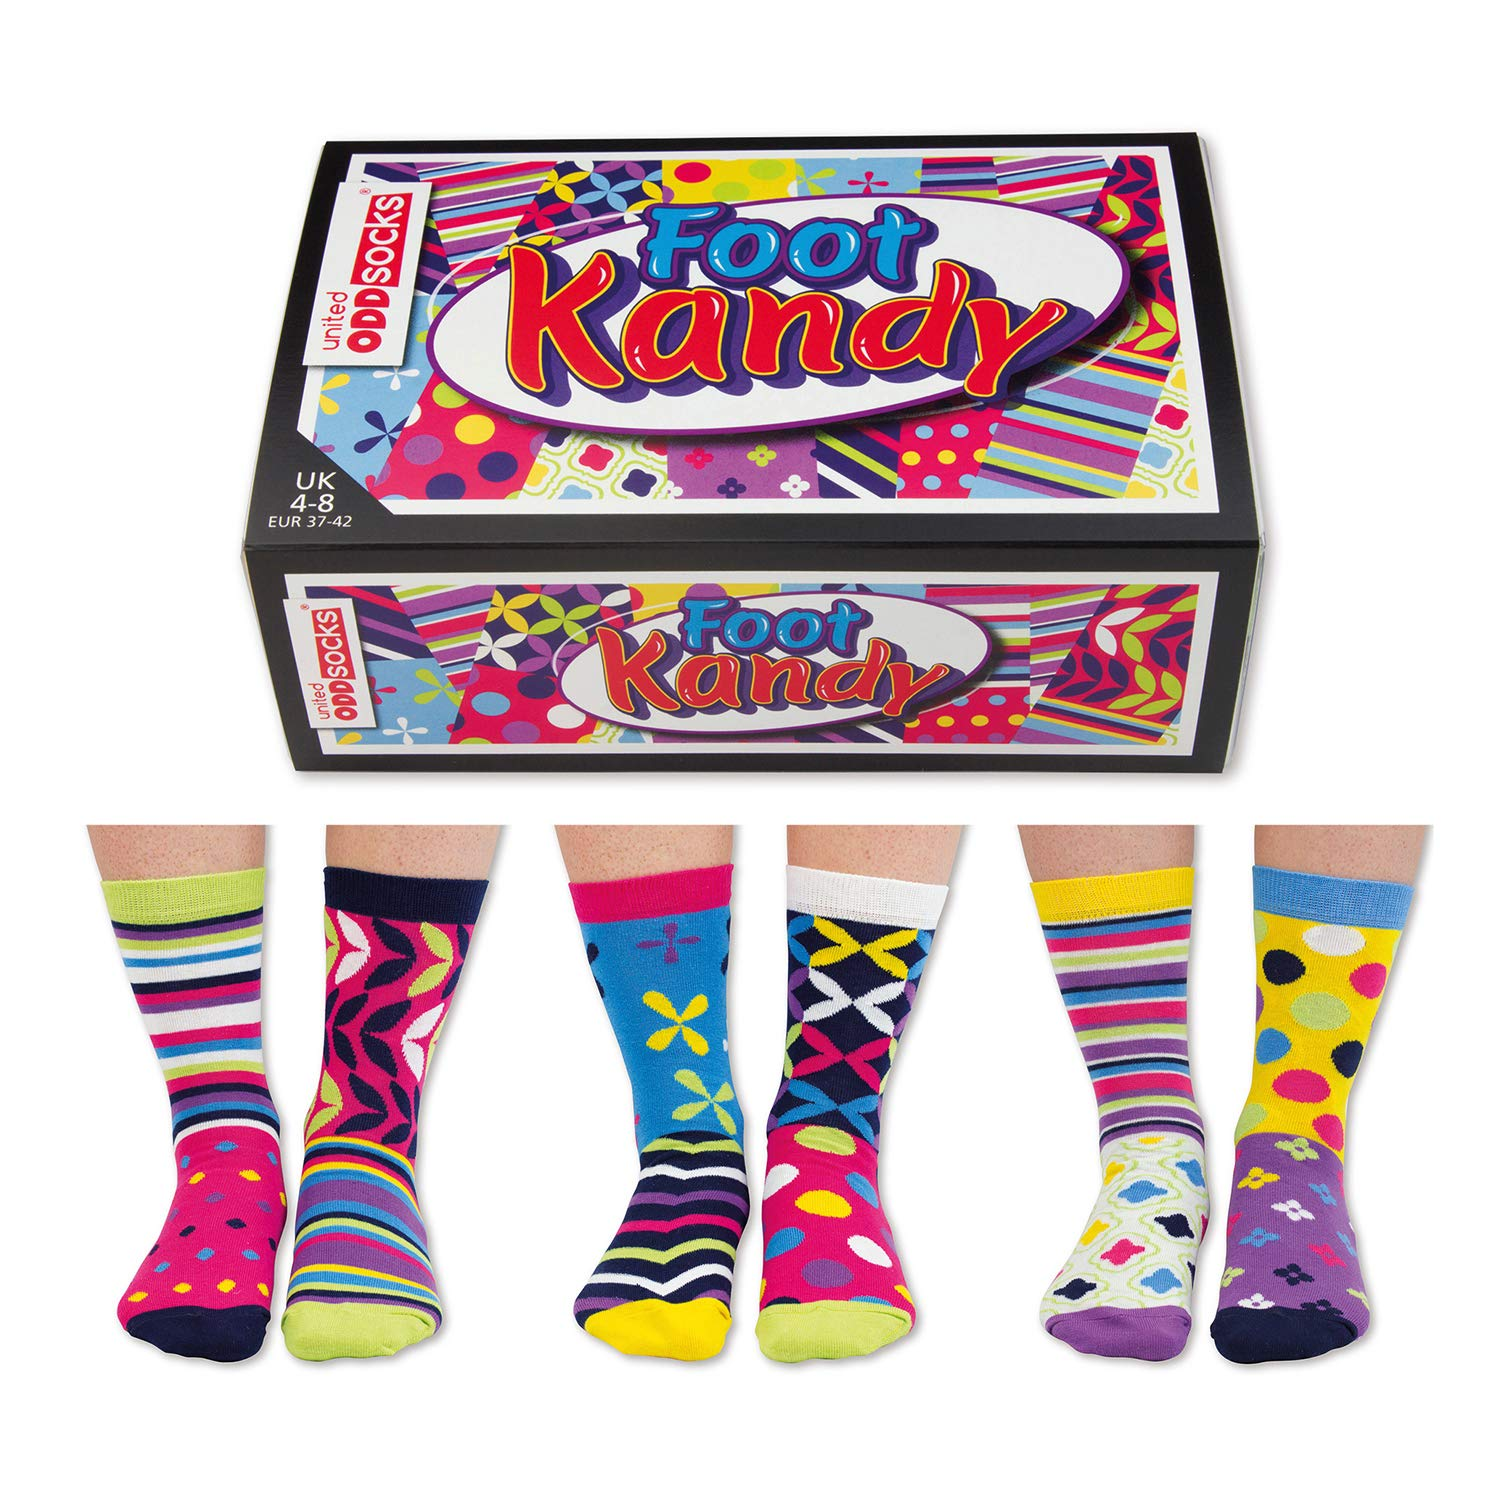 29b64ef3c29 The Present Store United Oddsocks Foot Kandy Lot de 6 chaussettes assorties  - 37 42